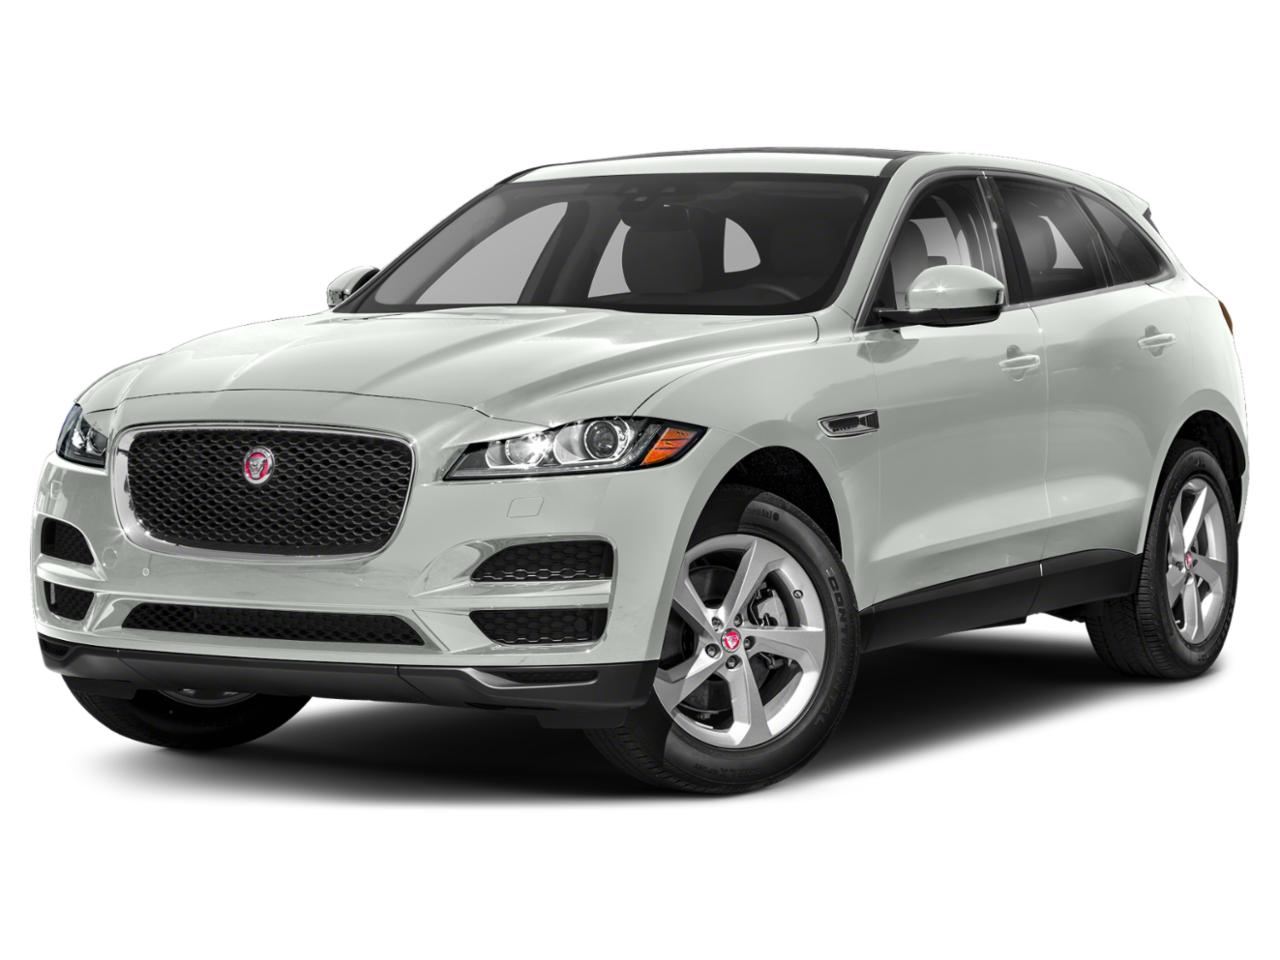 2019 Jaguar F-PACE Vehicle Photo in Portland, OR 97225